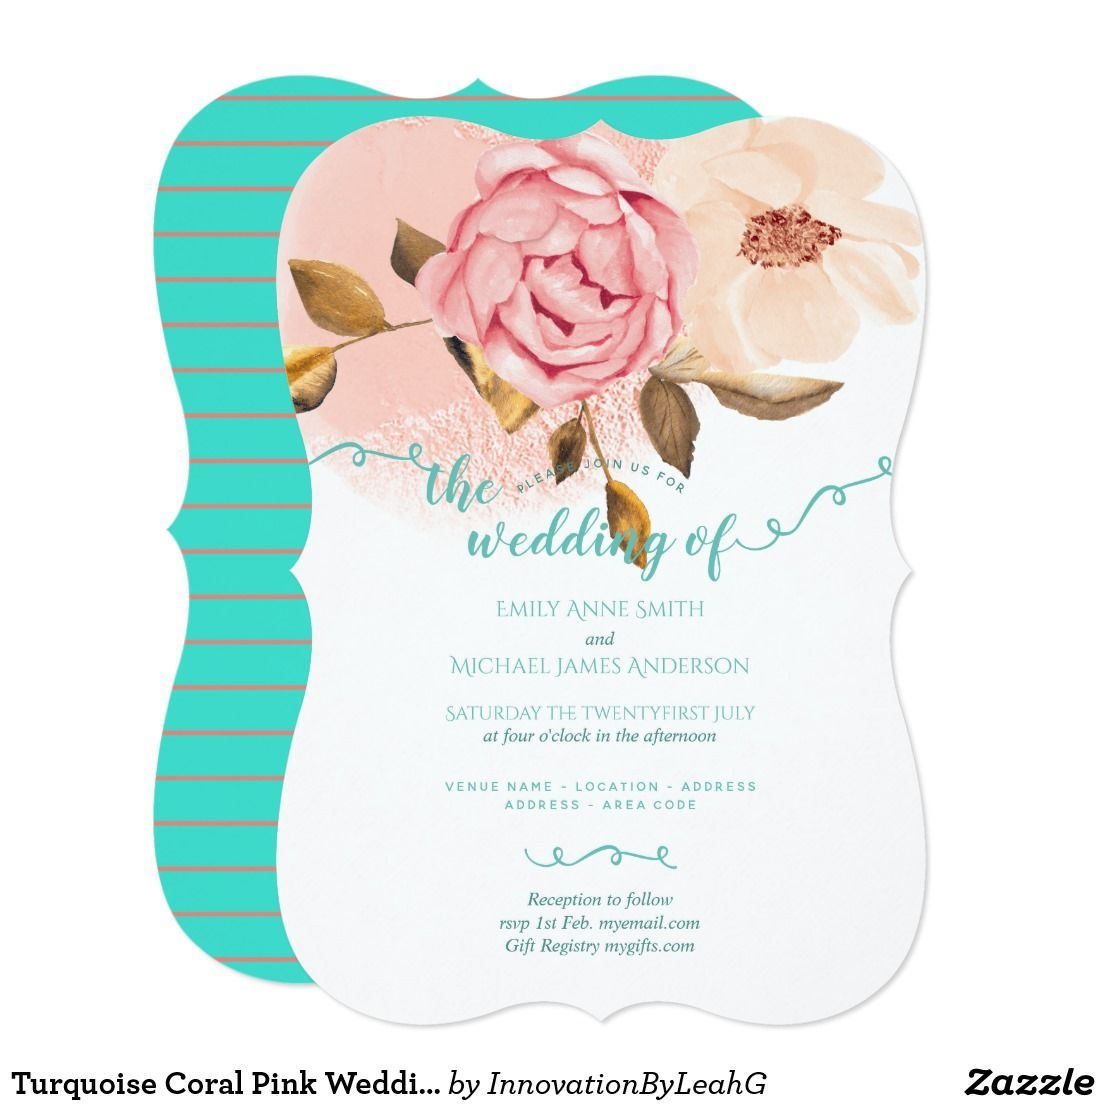 Turquoise Coral Pink Wedding Invitations Flowers | Zazzle.com #turquoisecoralweddings Turquoise Coral Pink Wedding Invitations Flowers #turquoisecoralweddings